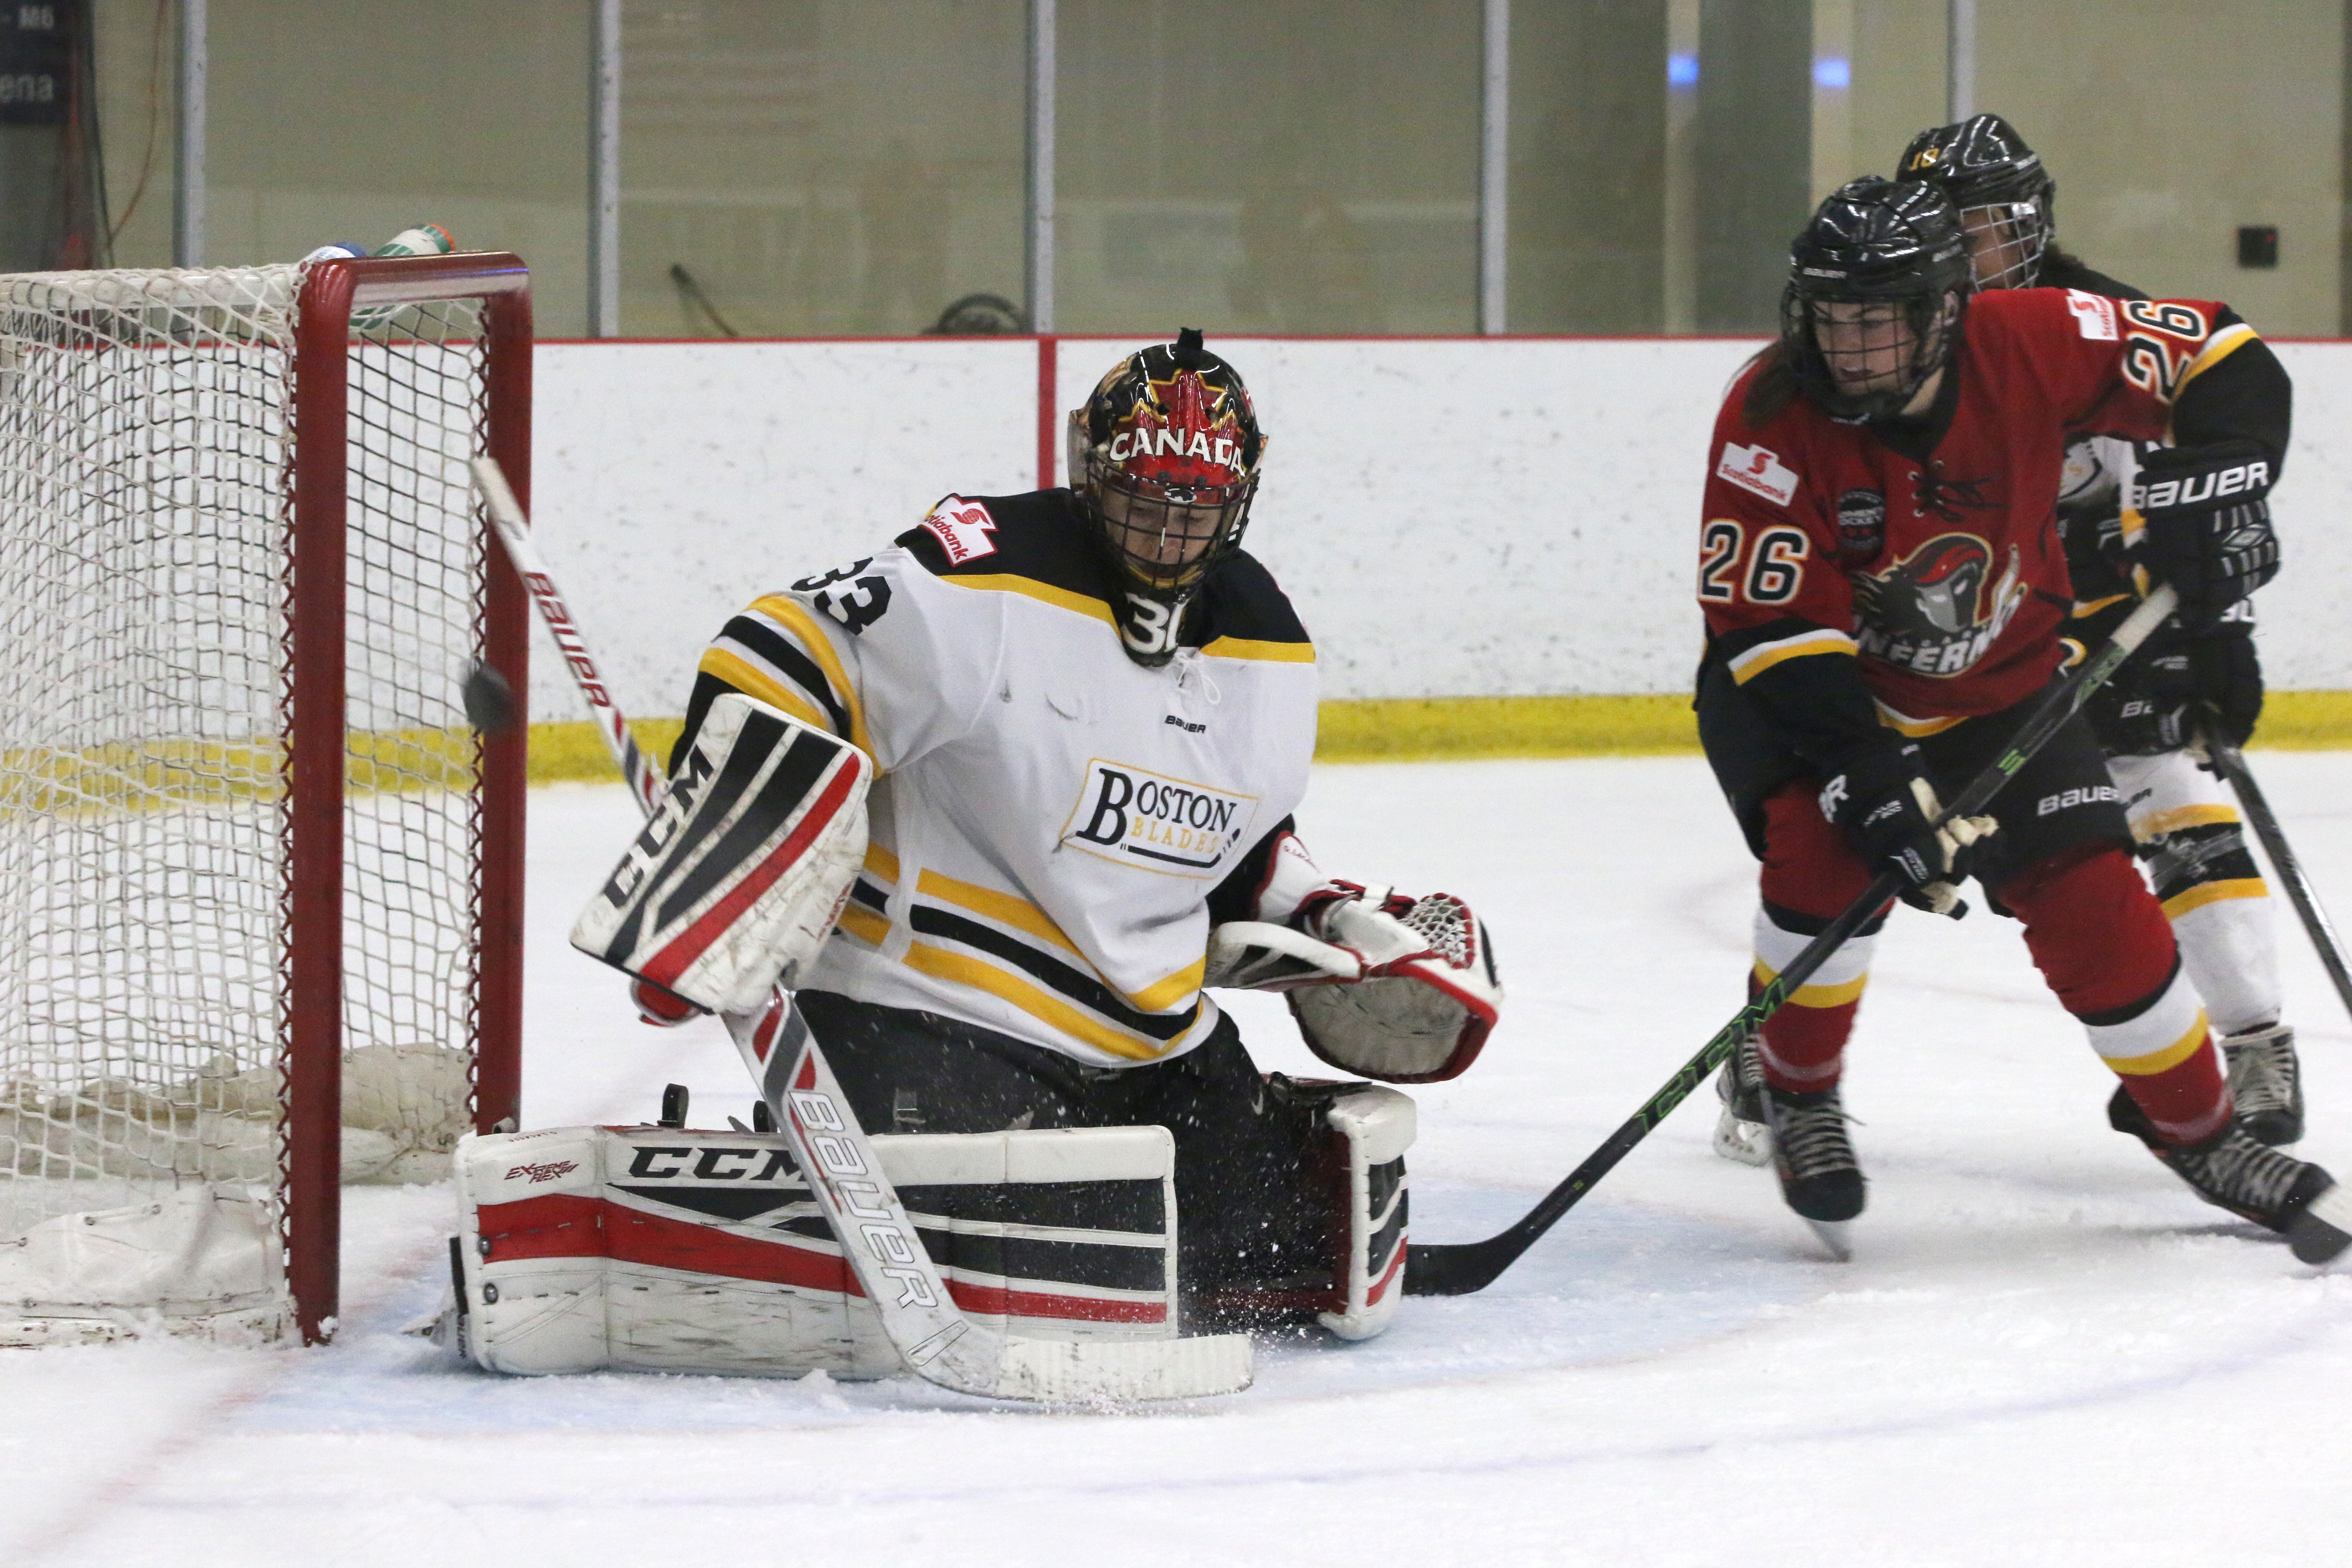 Genevieve Lacasse, who has faced nearly 50 shots per game in each of her starts for the Blades, will probably see similar action this weekend as Calgary comes into town.